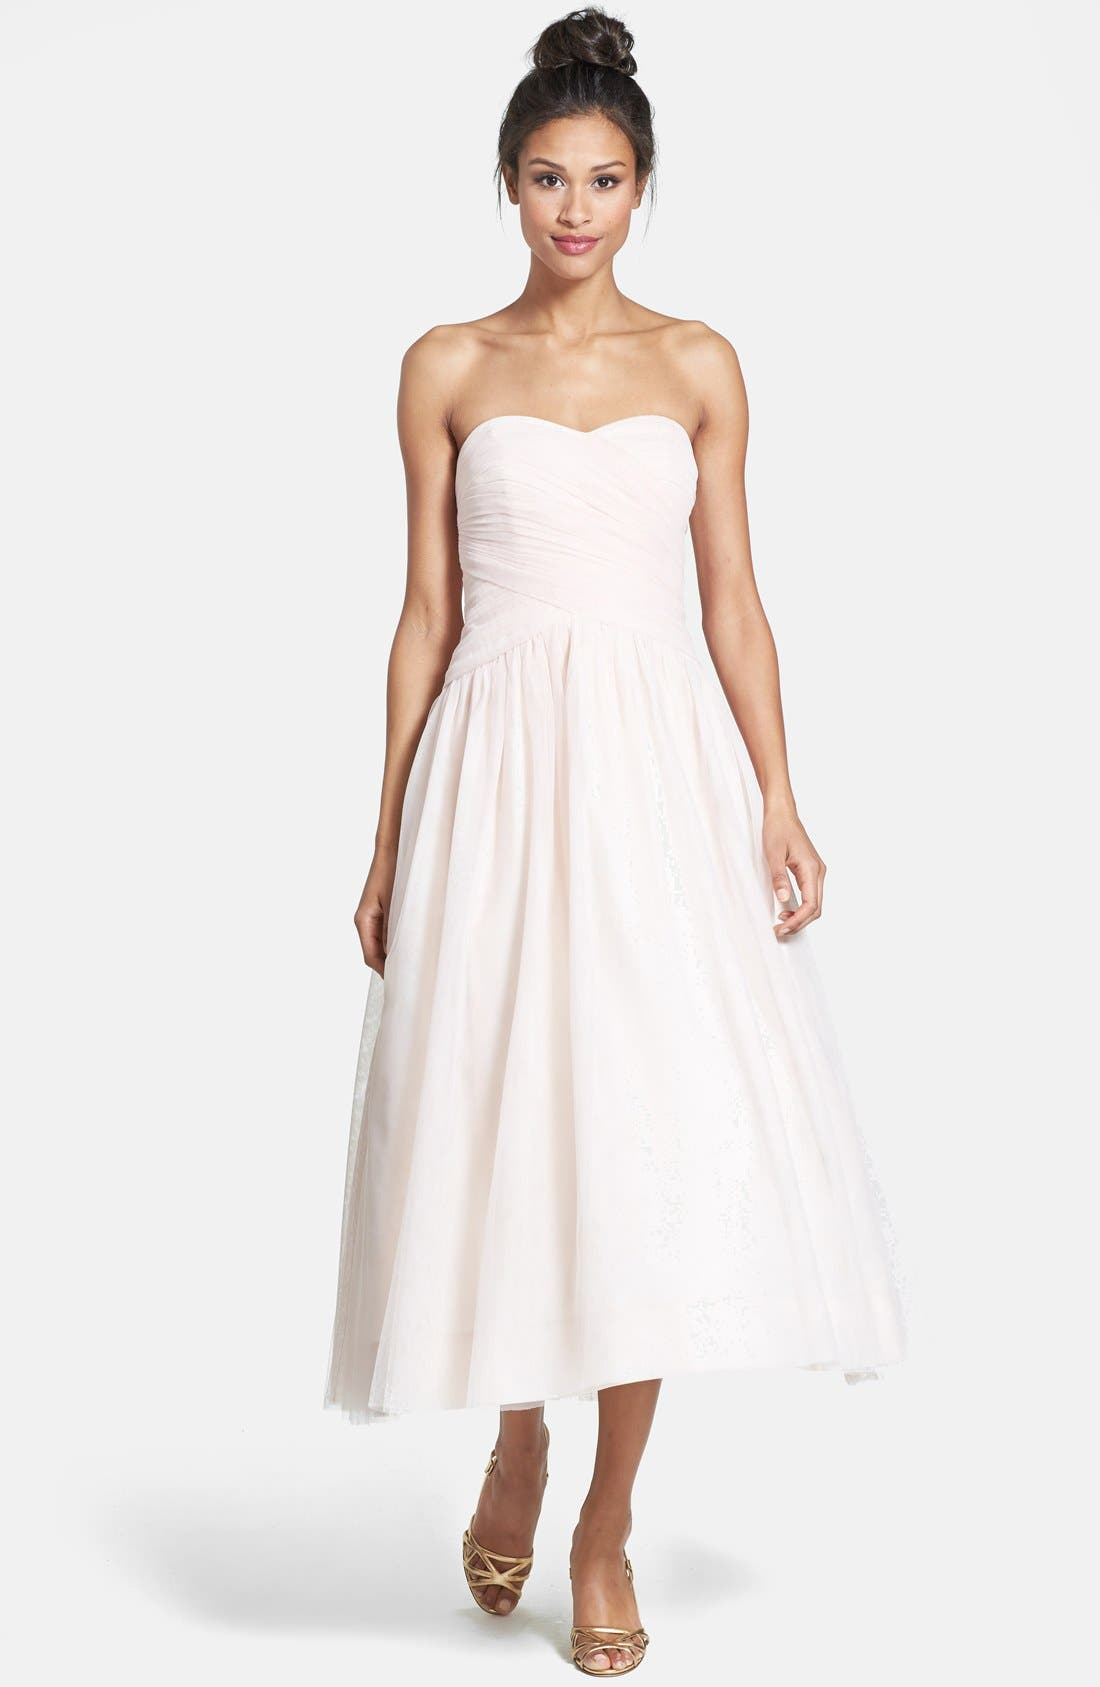 Main Image - Monique Lhuillier Bridesmaids Tulle Tea-Length Dress